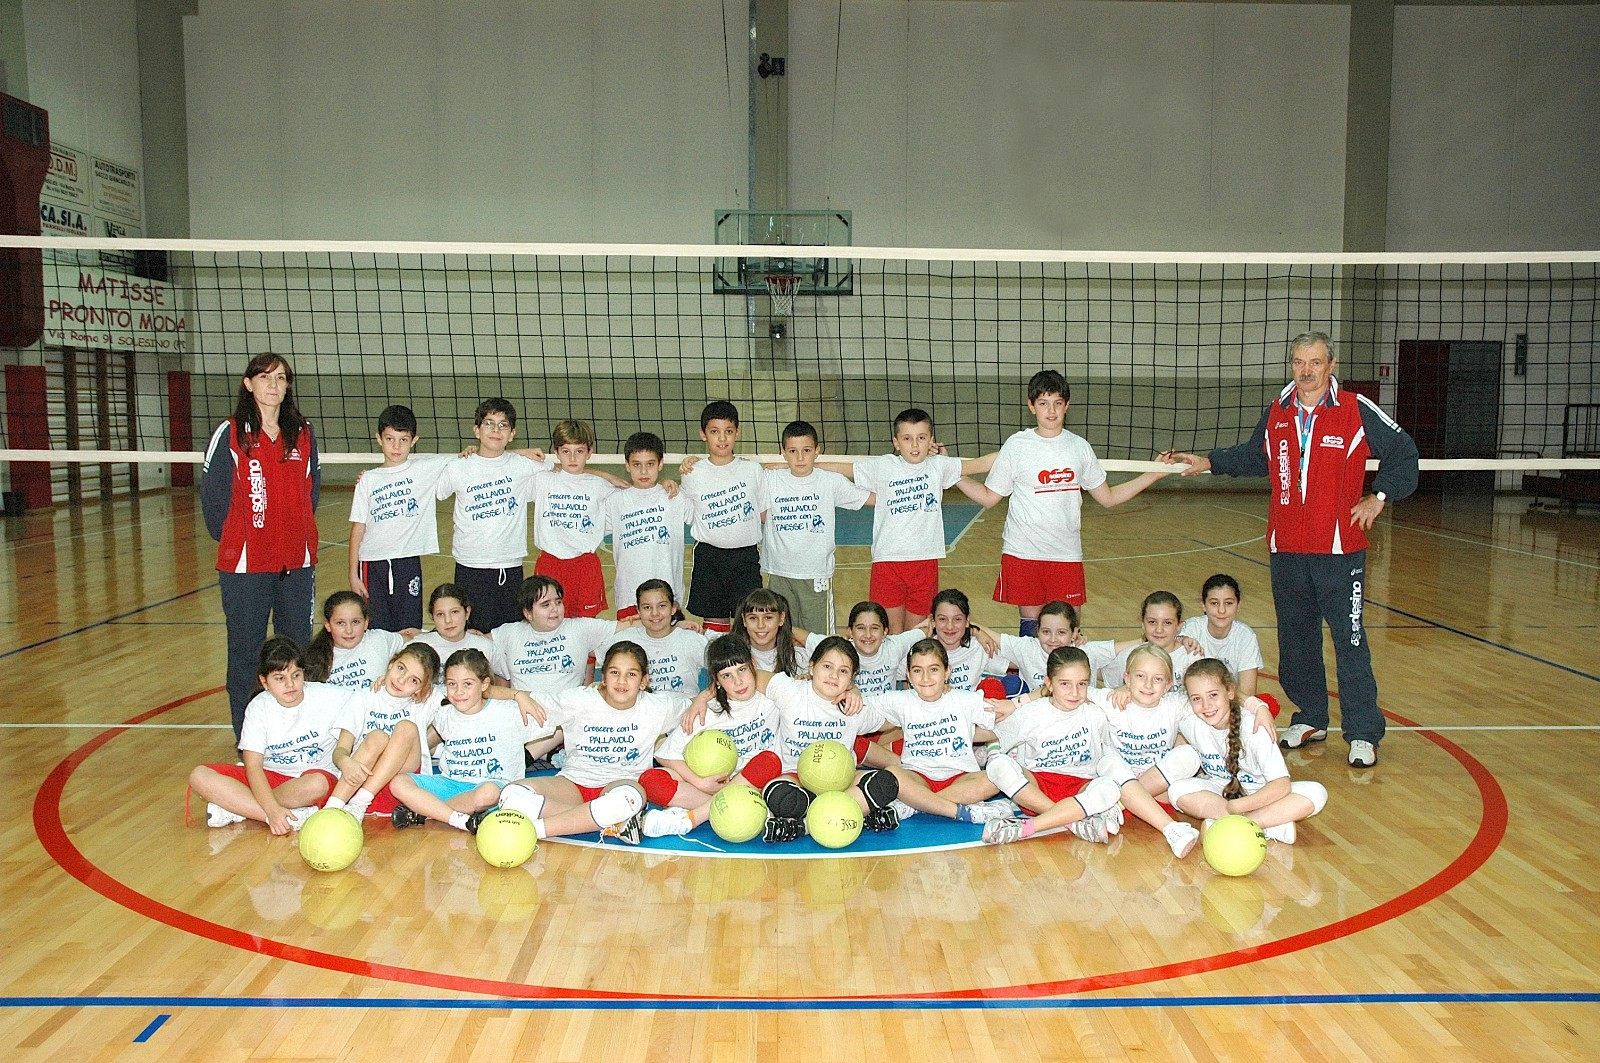 Minivolley 2 2008 / 2009